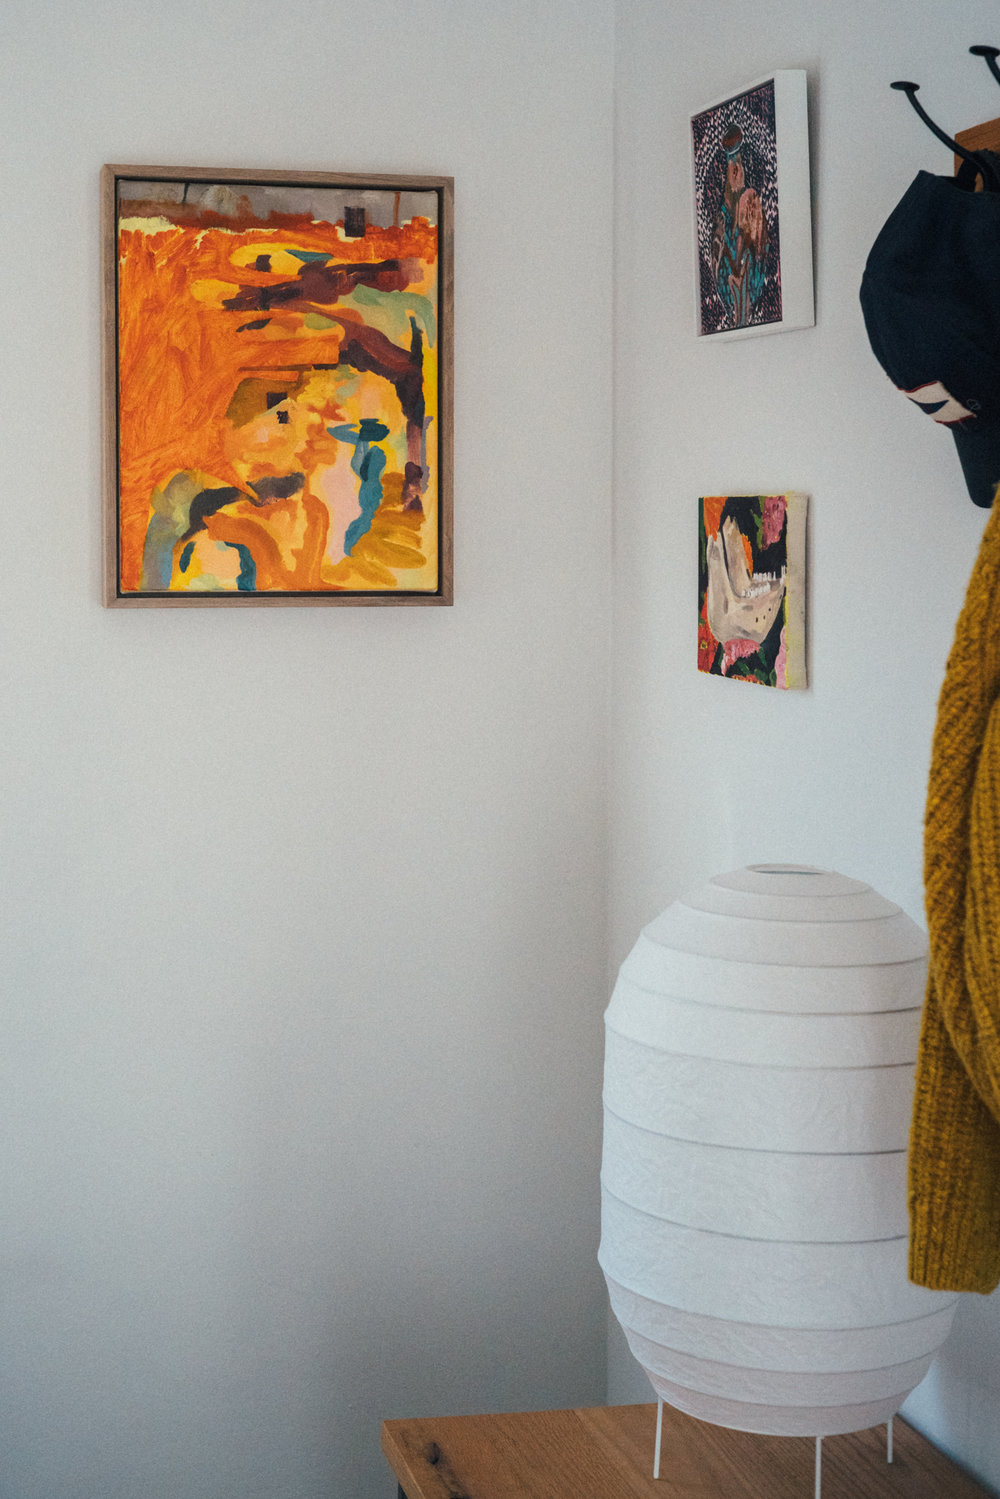 Five-Alarm Fire , also from 2018, photographed in situ with two Anna Valdez paintings.